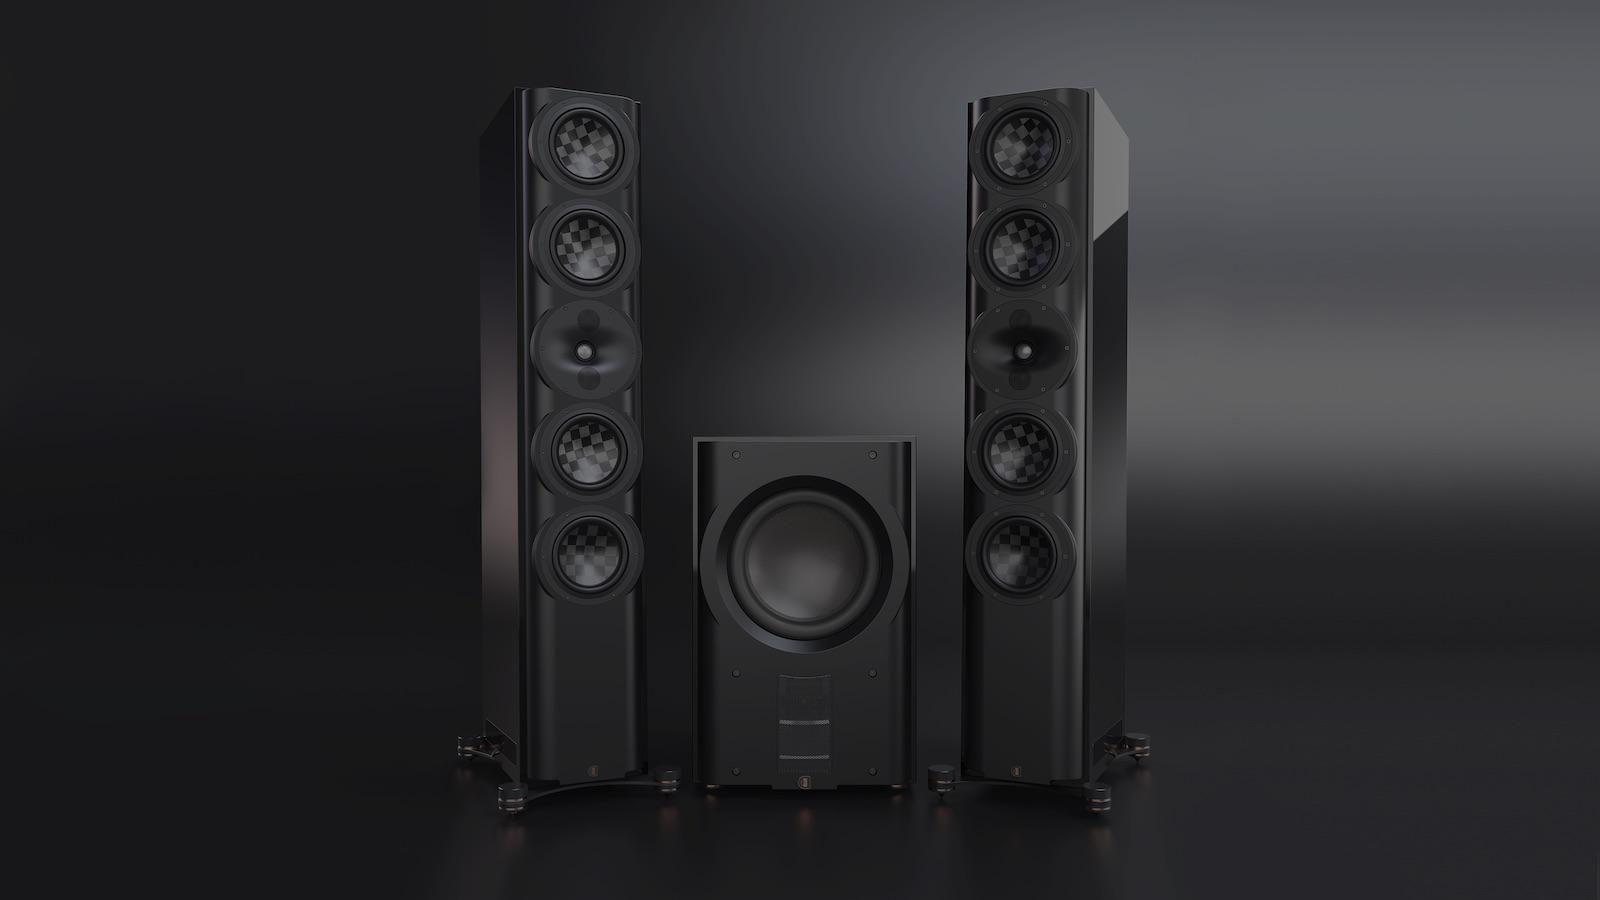 PerListen s7t Tower Loudspeakers pair with d212s subwoofer